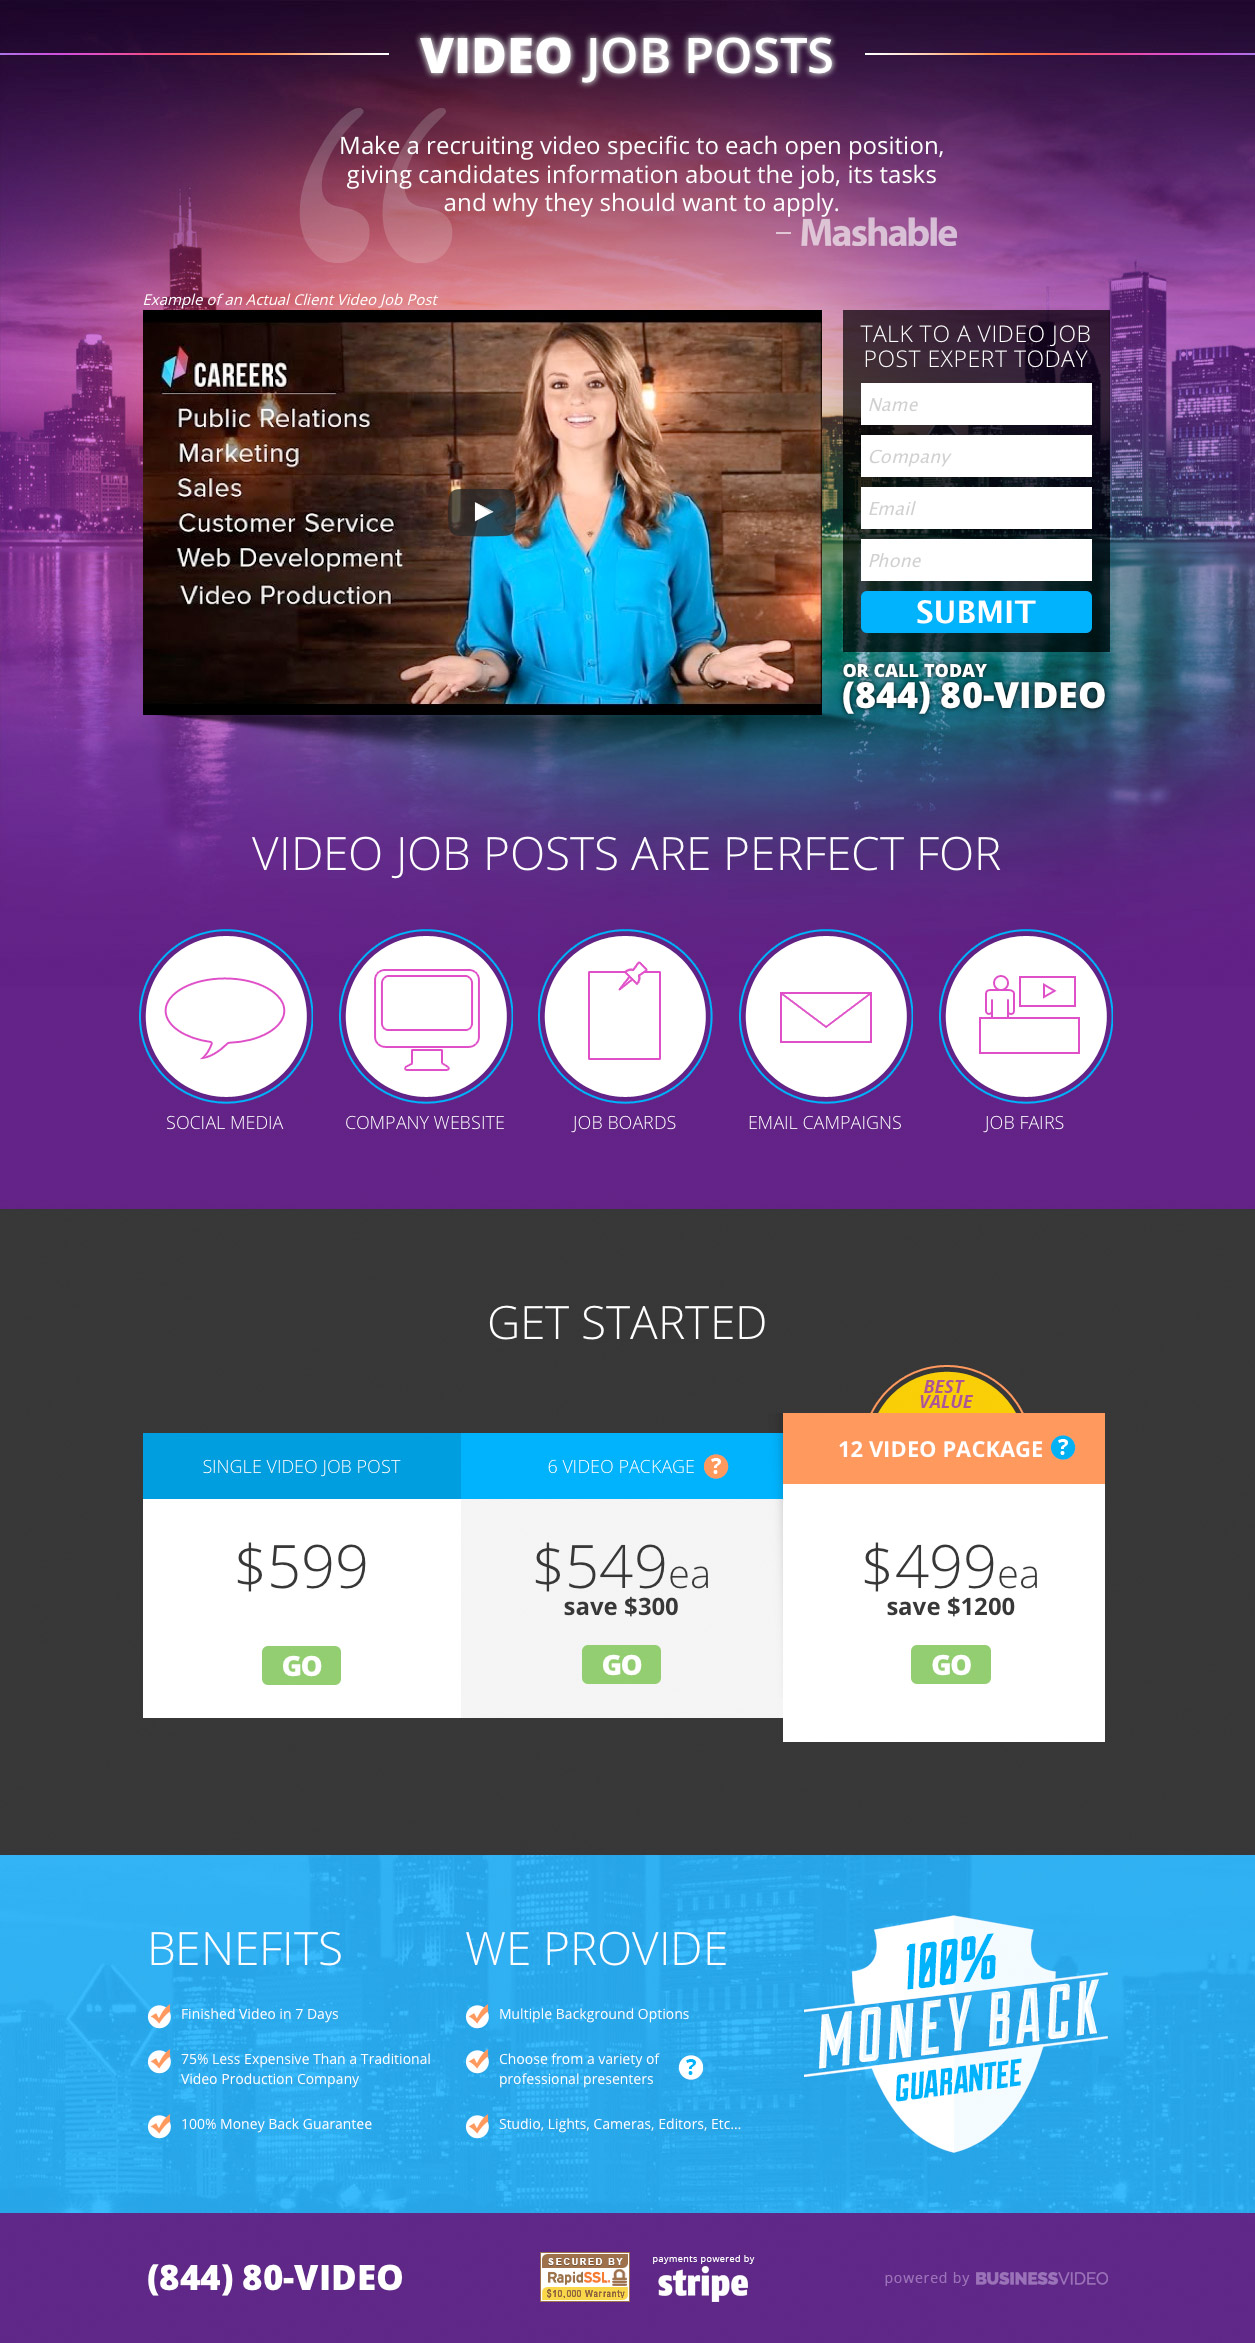 tulsa web design tulsa marketing world class business websites a custom website for videojobposts com